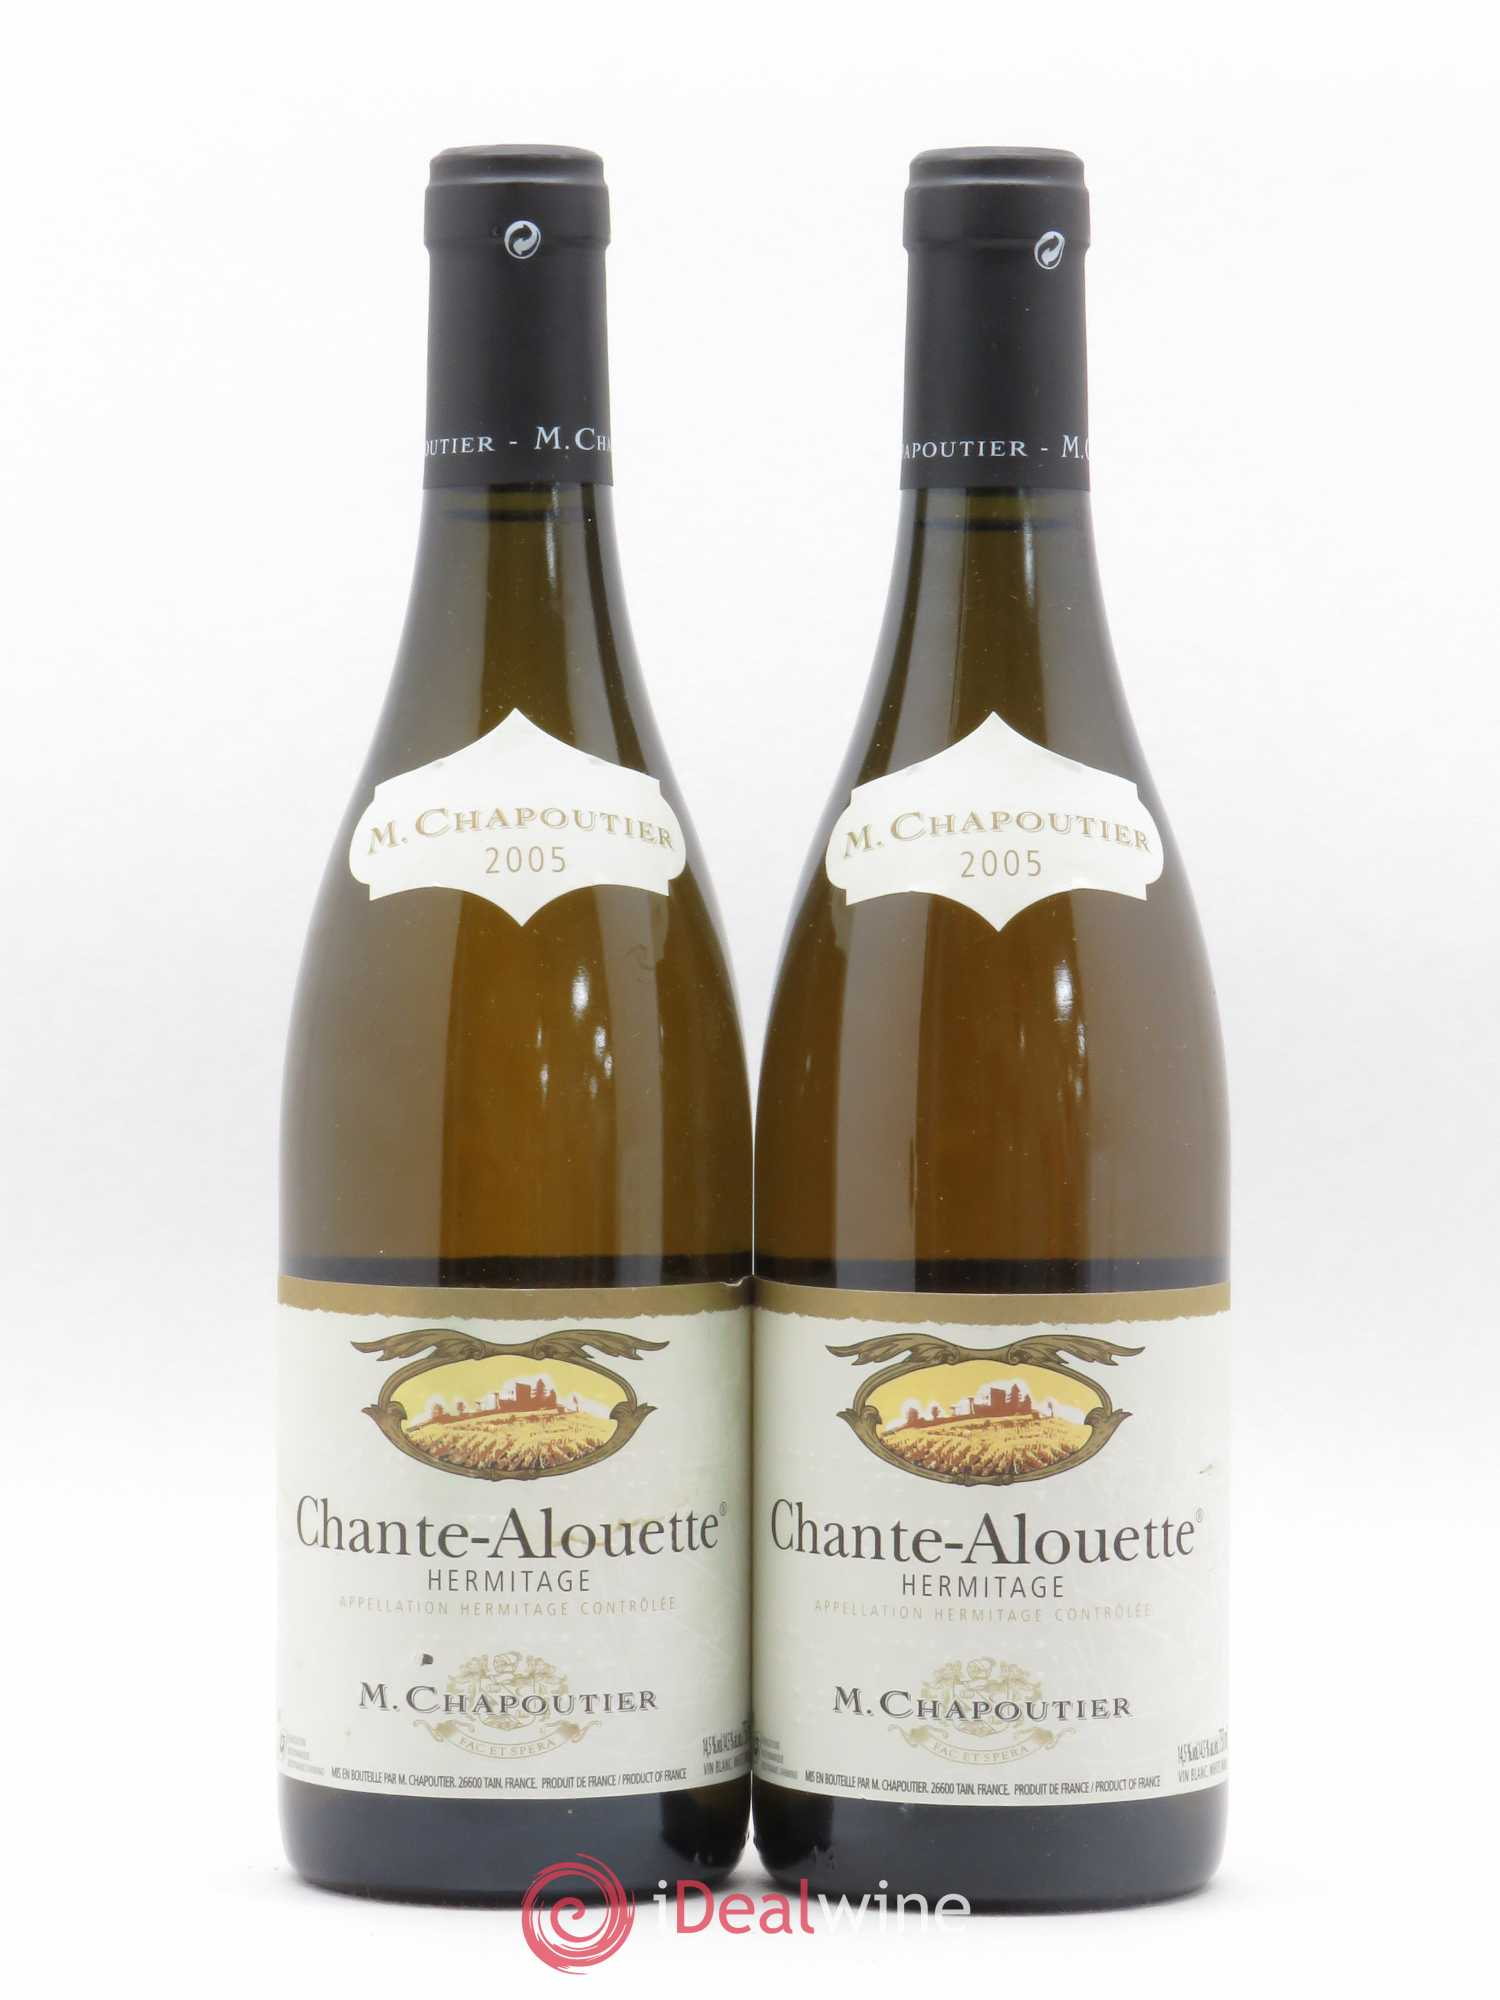 Hermitage Chante Alouette Chapoutier  2005 - Lot of 2 Bottles